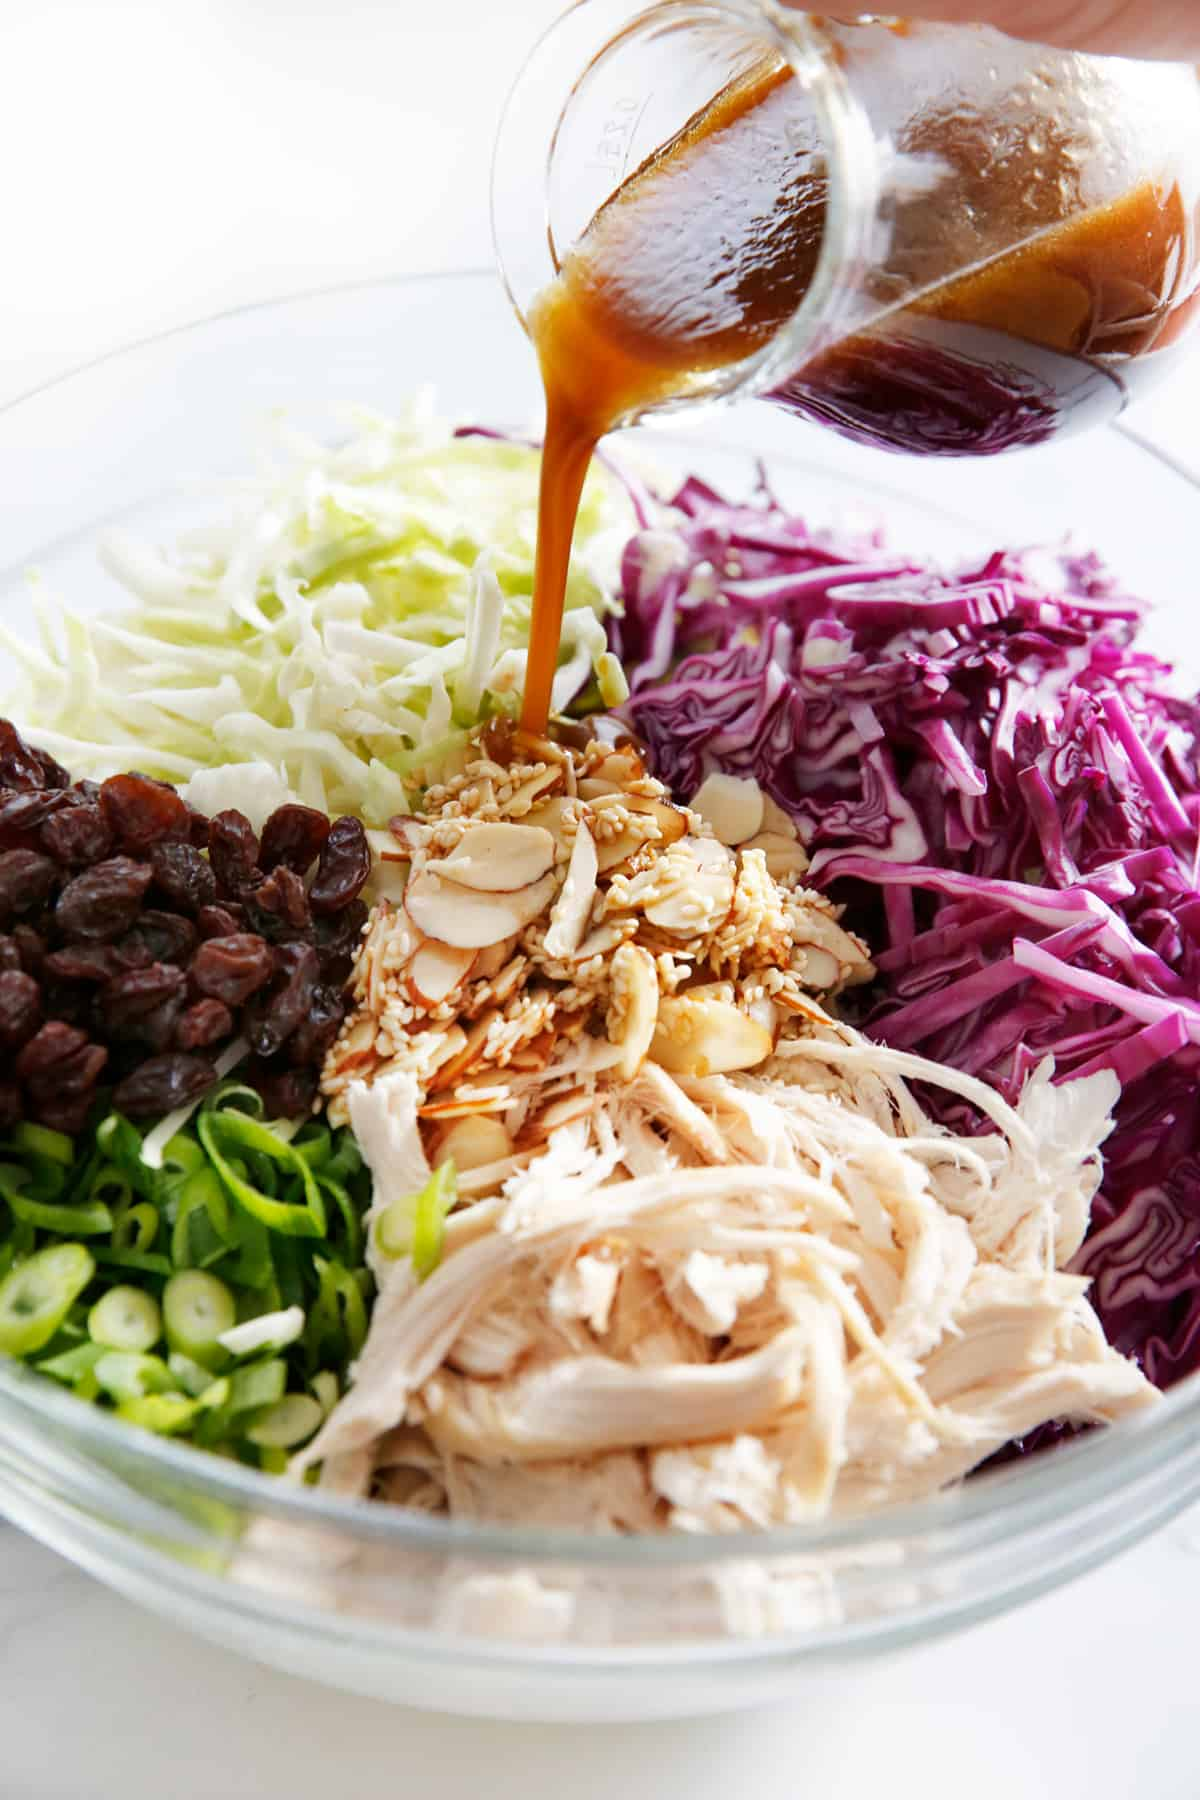 sweet sesame dressing poured over chicken Thai slaw